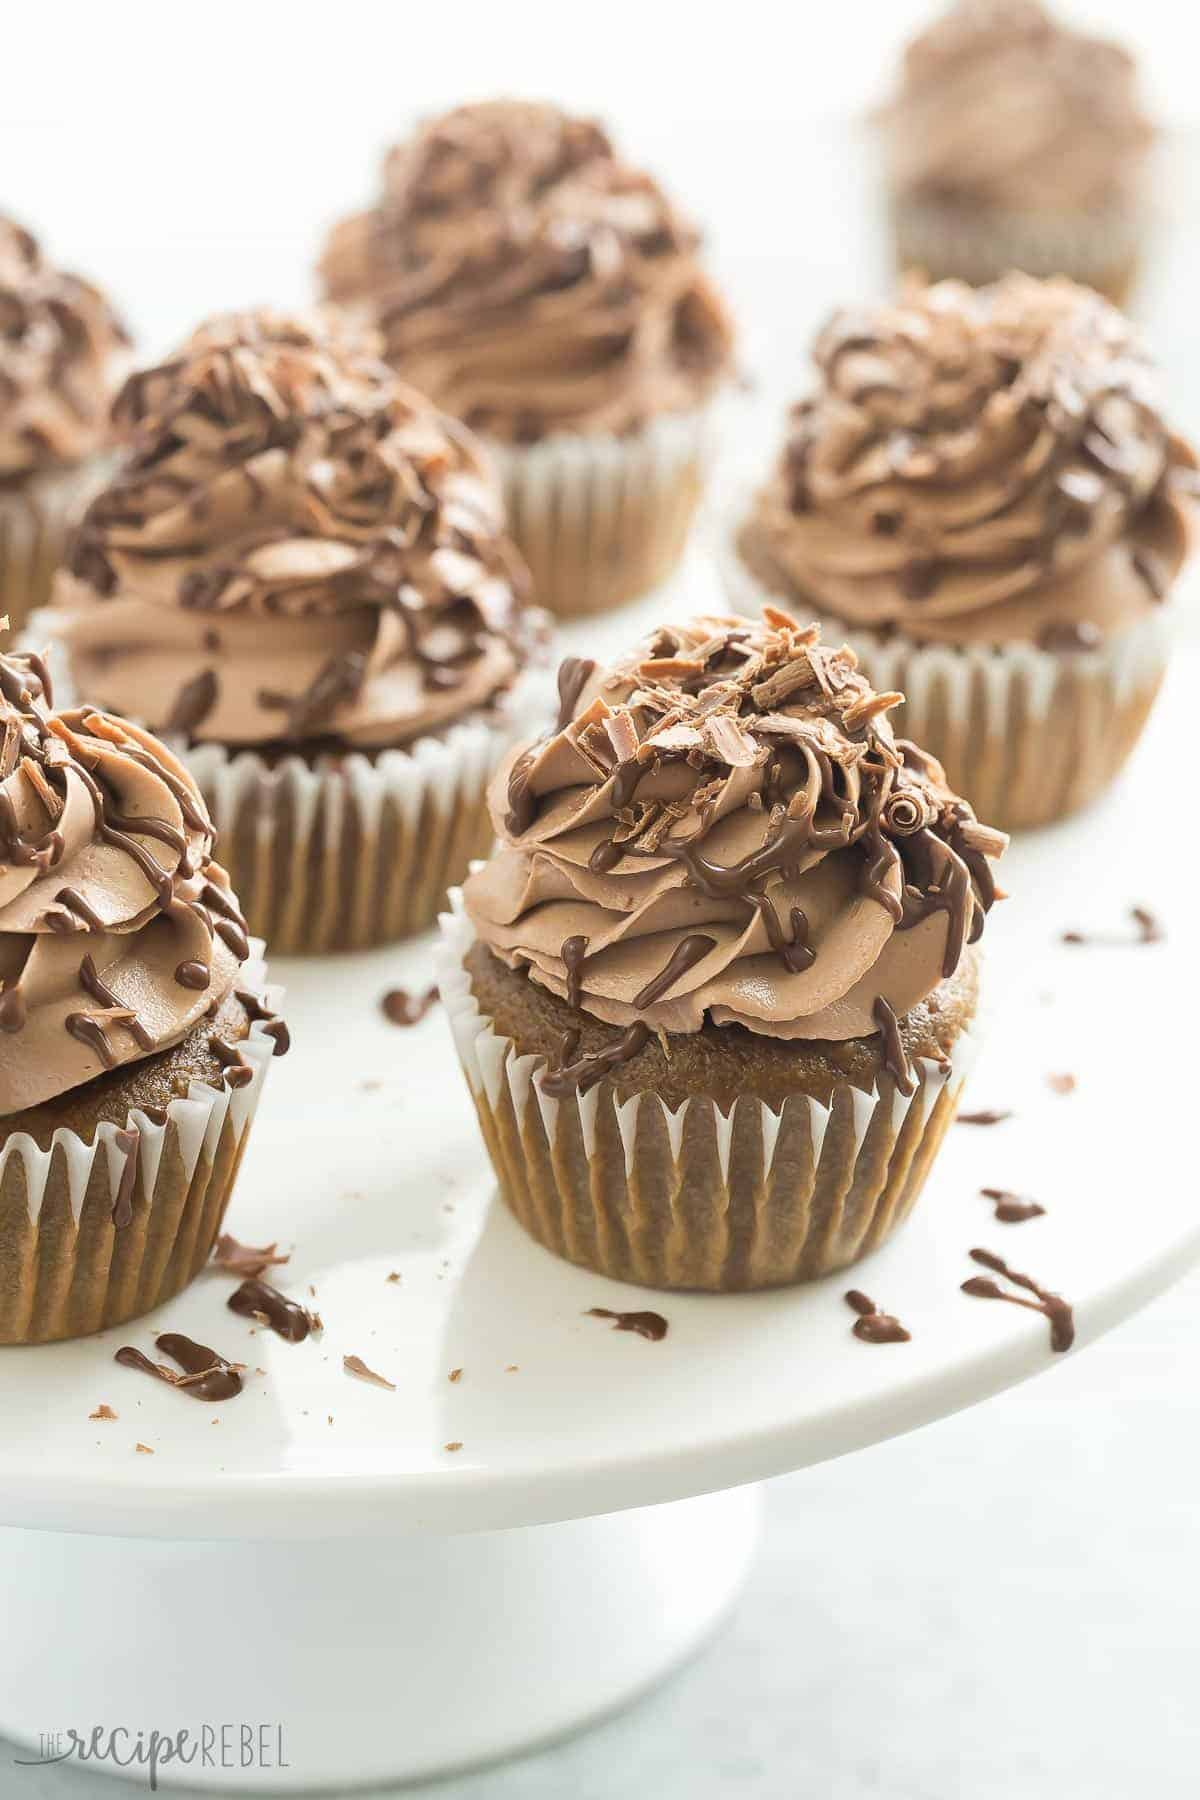 white cake plate full of mocha nutella cupcakes with frosting and chocolate drizzle